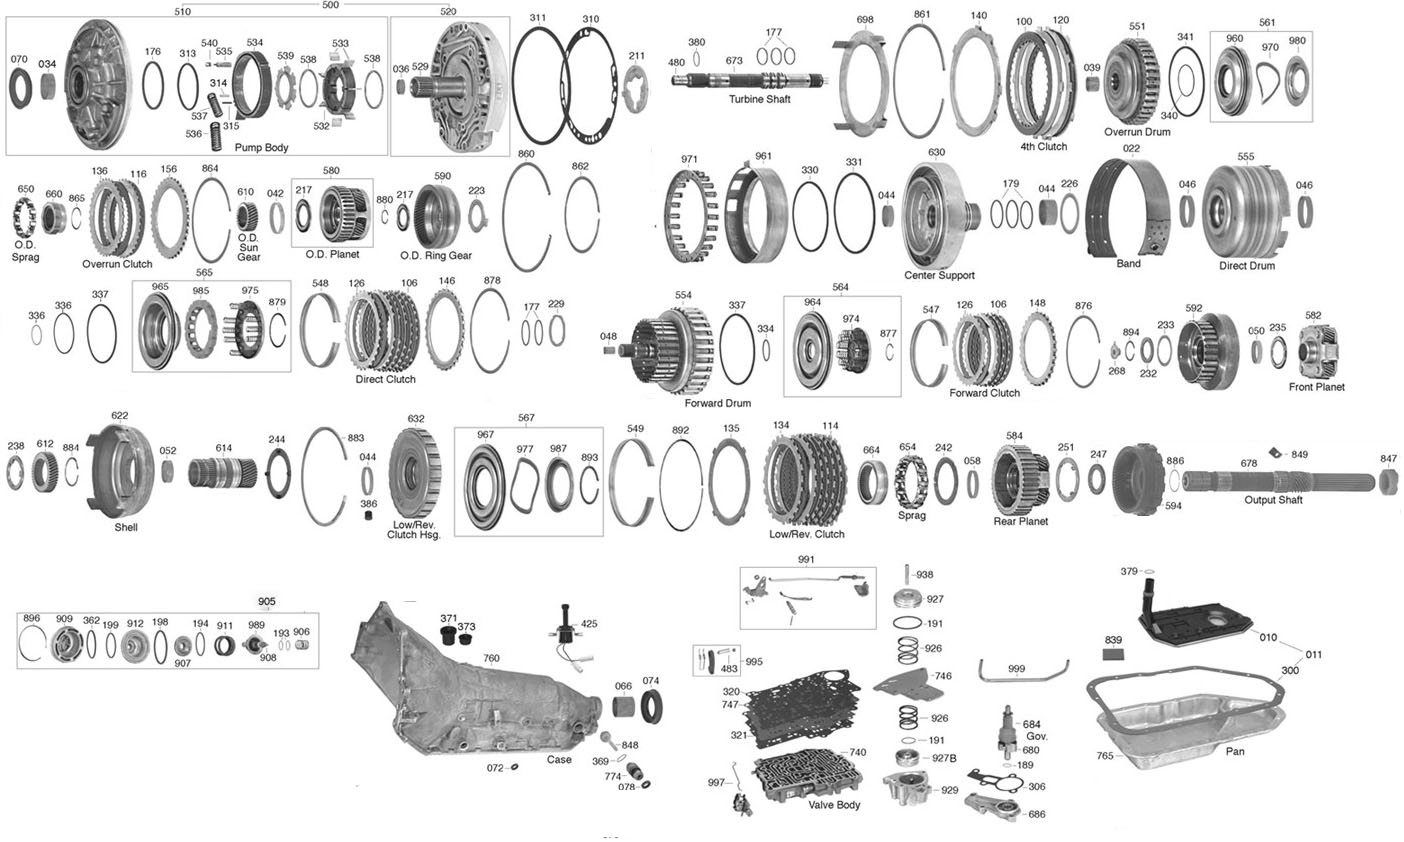 hight resolution of trans parts online 200 2004r transmission parts th350 exploded diagram 2004r parts diagram